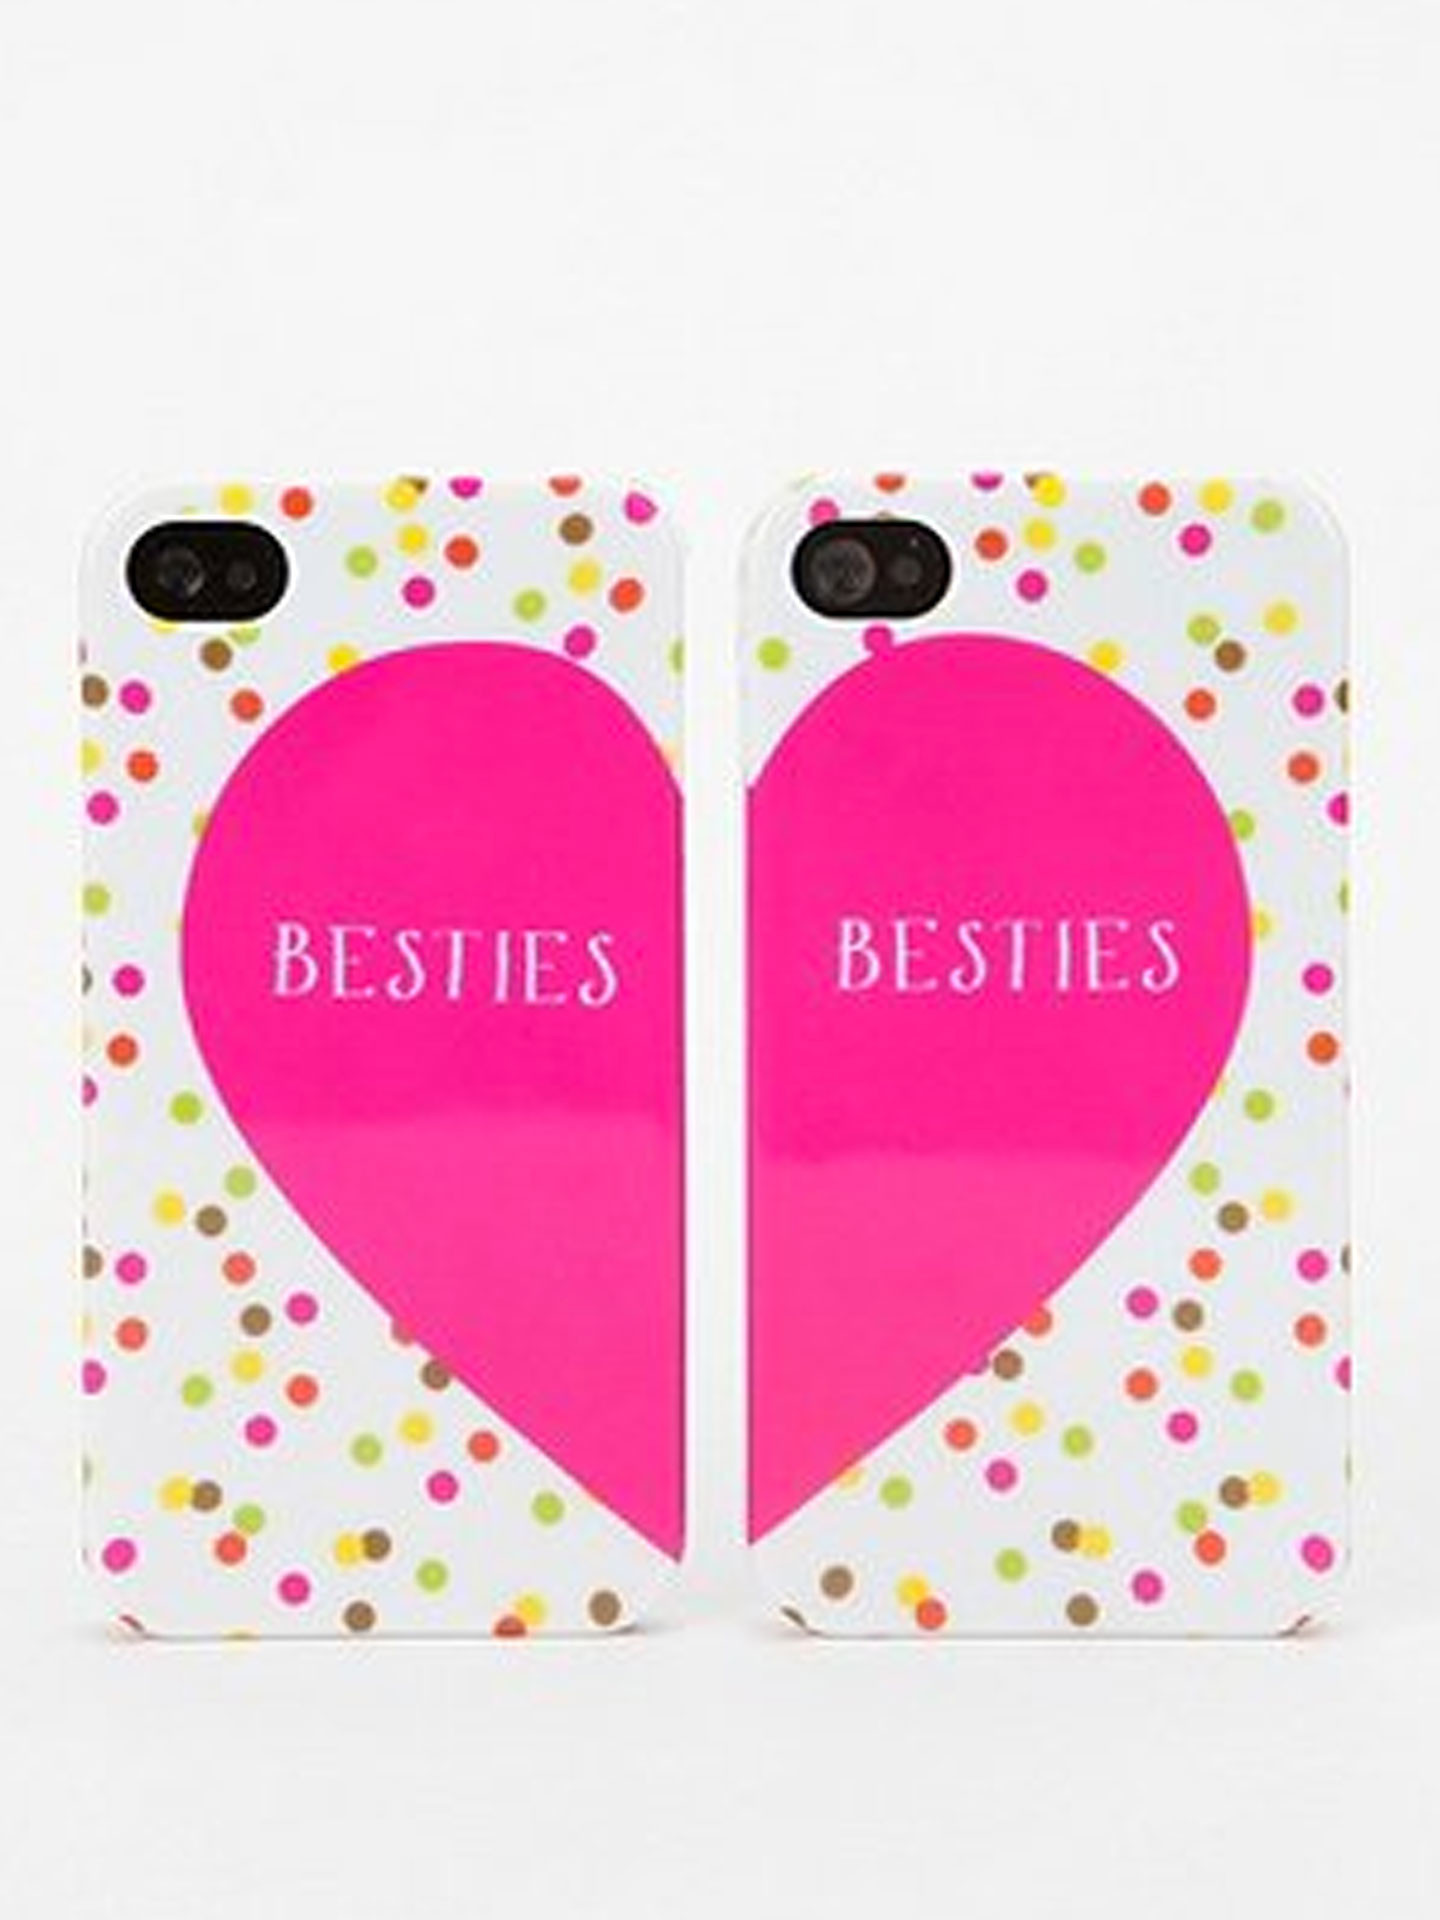 Bff Quotes Wallpapers Bff Wallpaper 183 ①